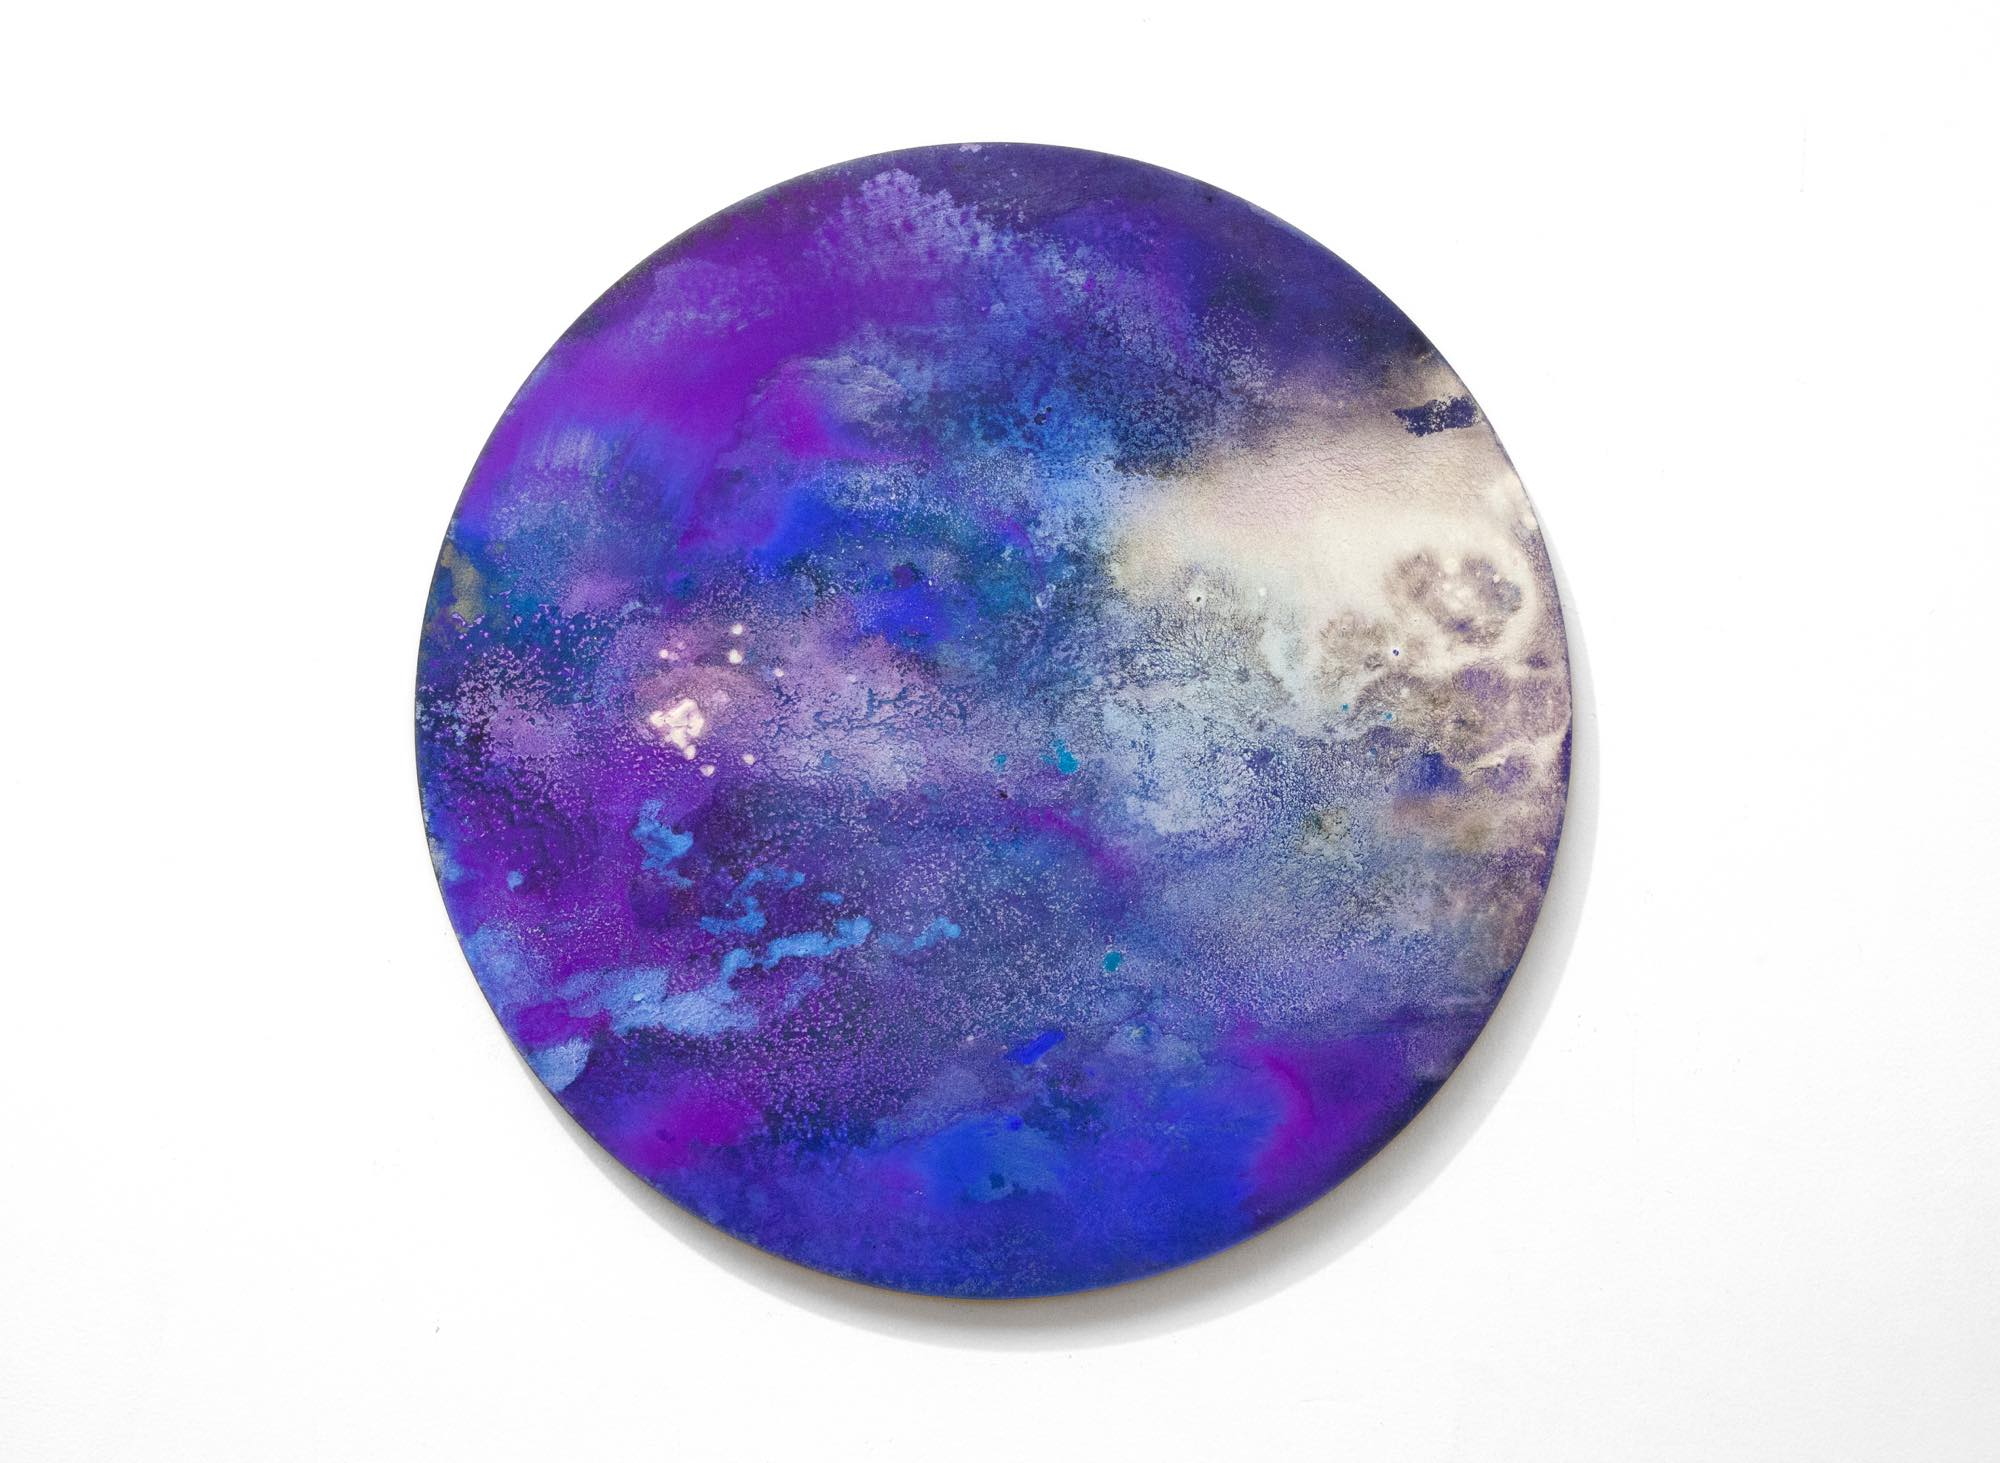 2016  Acrylic and metallic powder on board  41cm diameter